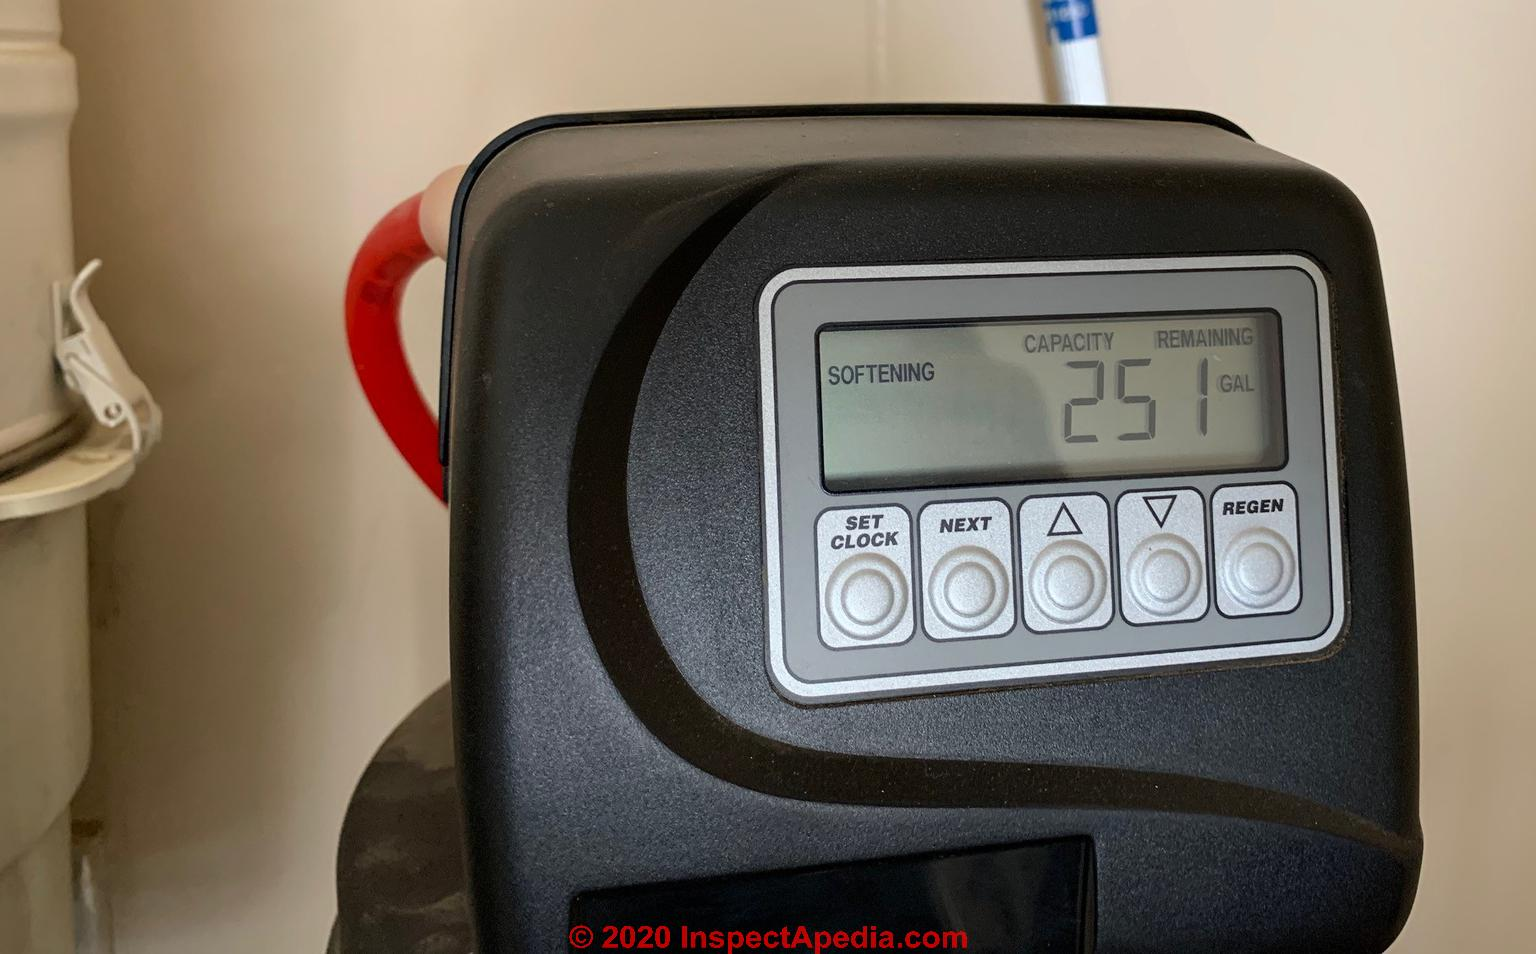 Water Softener Identification How To Identify The Brand Model Of